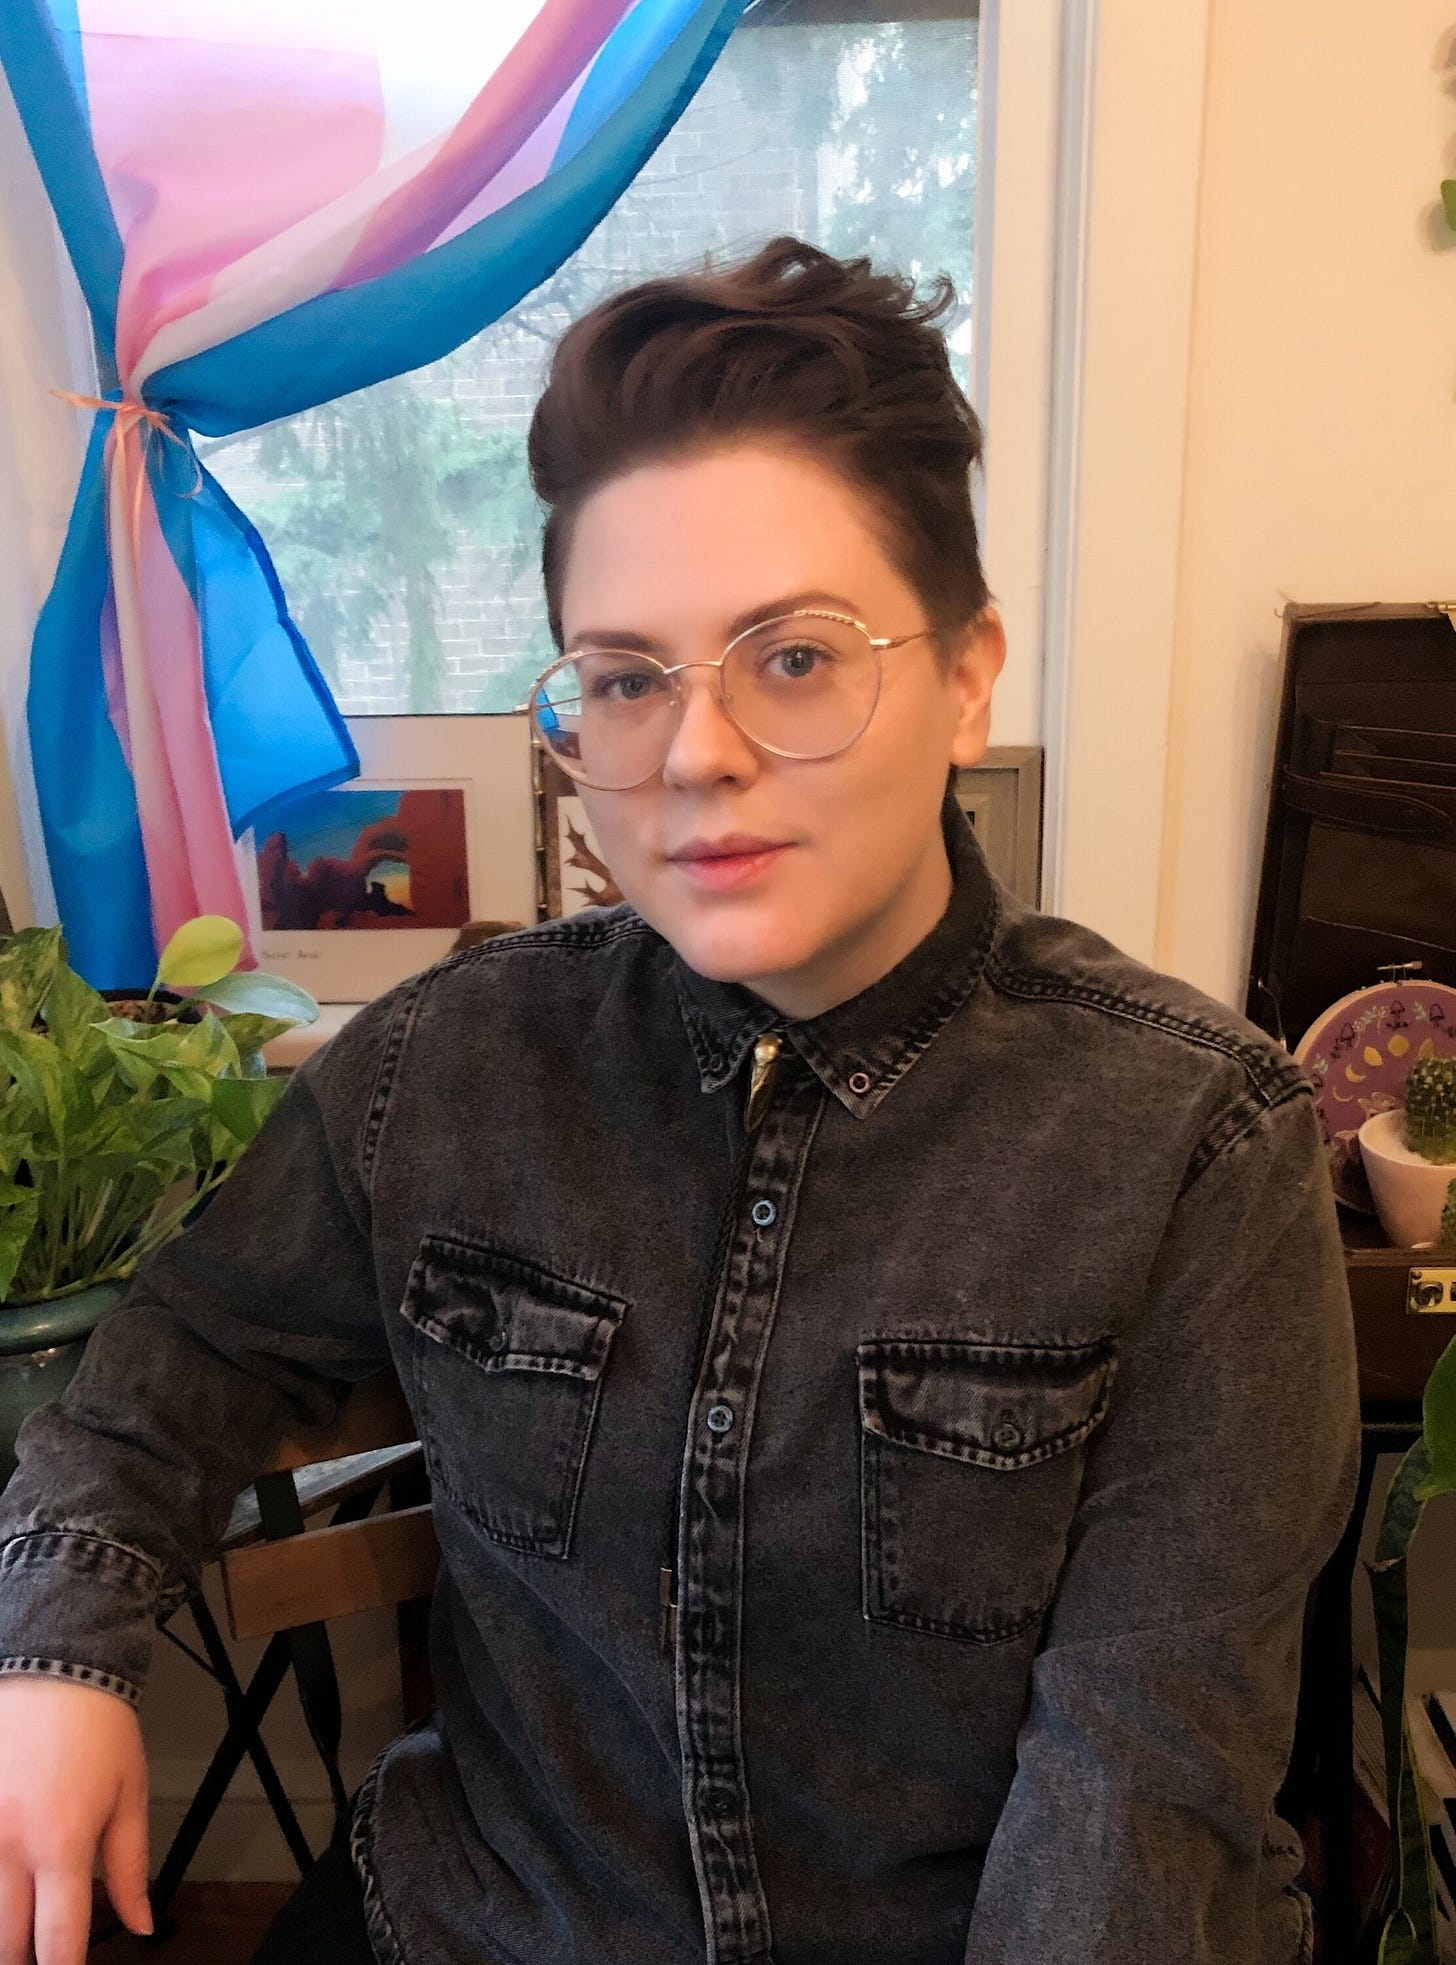 Britt, a white non-binary person with short hair and glasses, sits in front of a trans flag, and near some plants. They wear a long sleeve denim shirt, and metal cicada bolo tie.